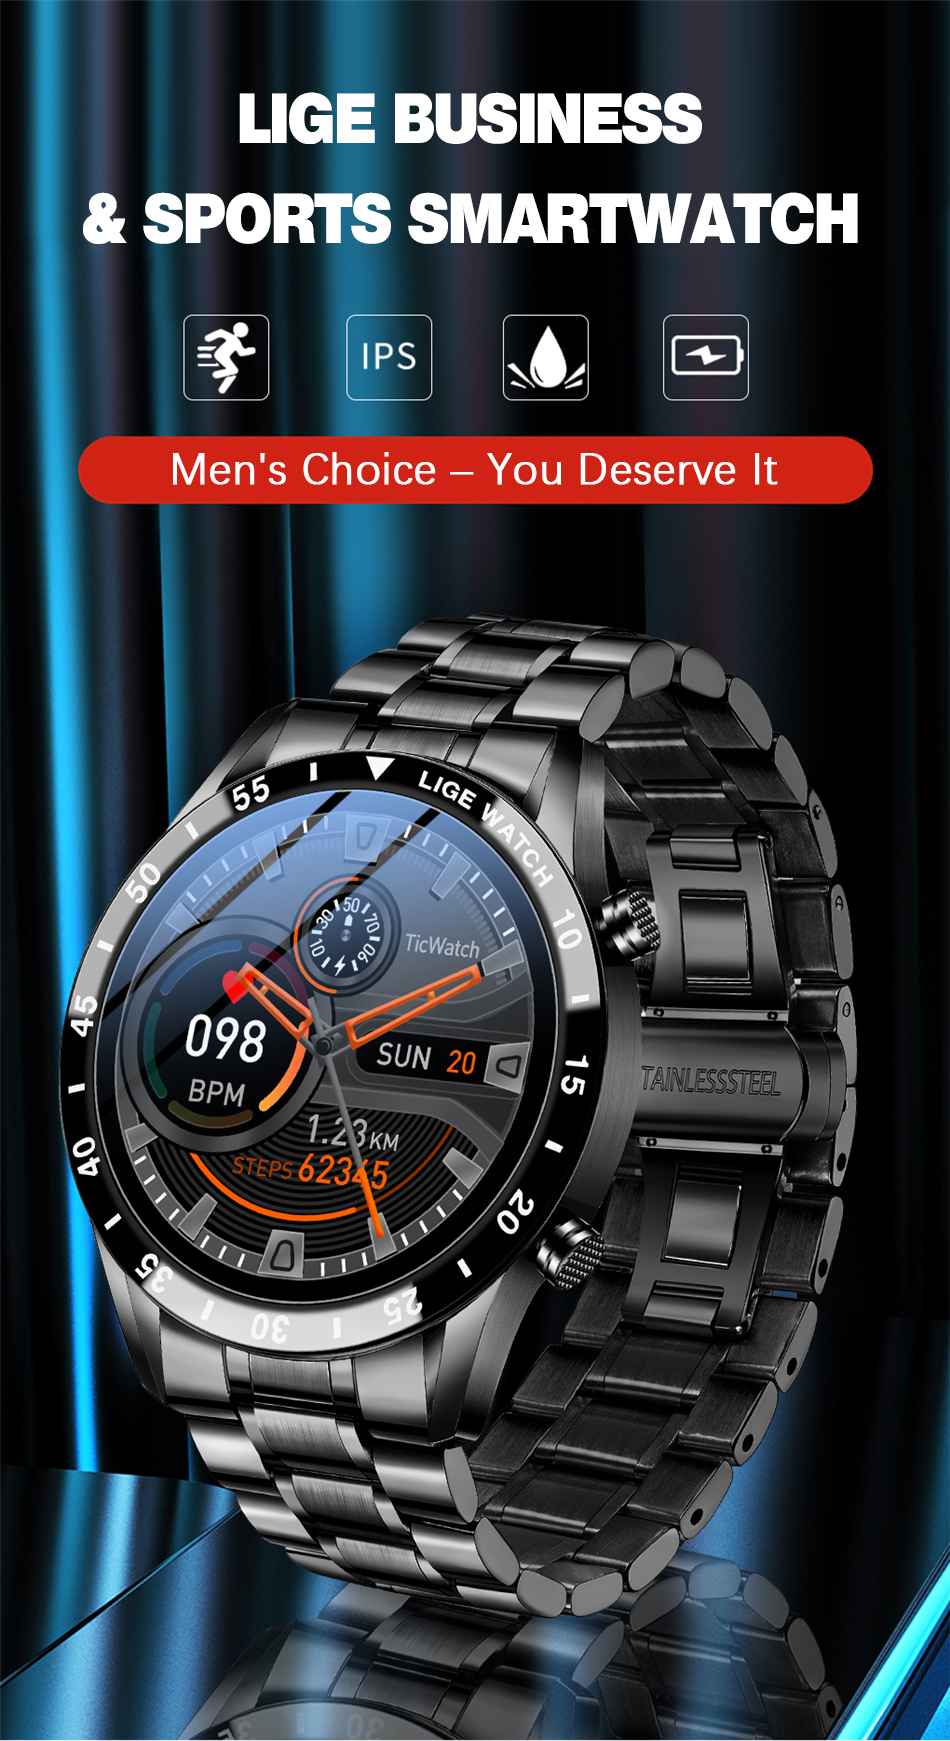 Hf6838ef579f34b6487c262516e9714f0o LIGE New Men Smart watch Heart rate Blood pressure IP68 waterproof sports Fitness watch Luxury Smart watch male for iOS Android